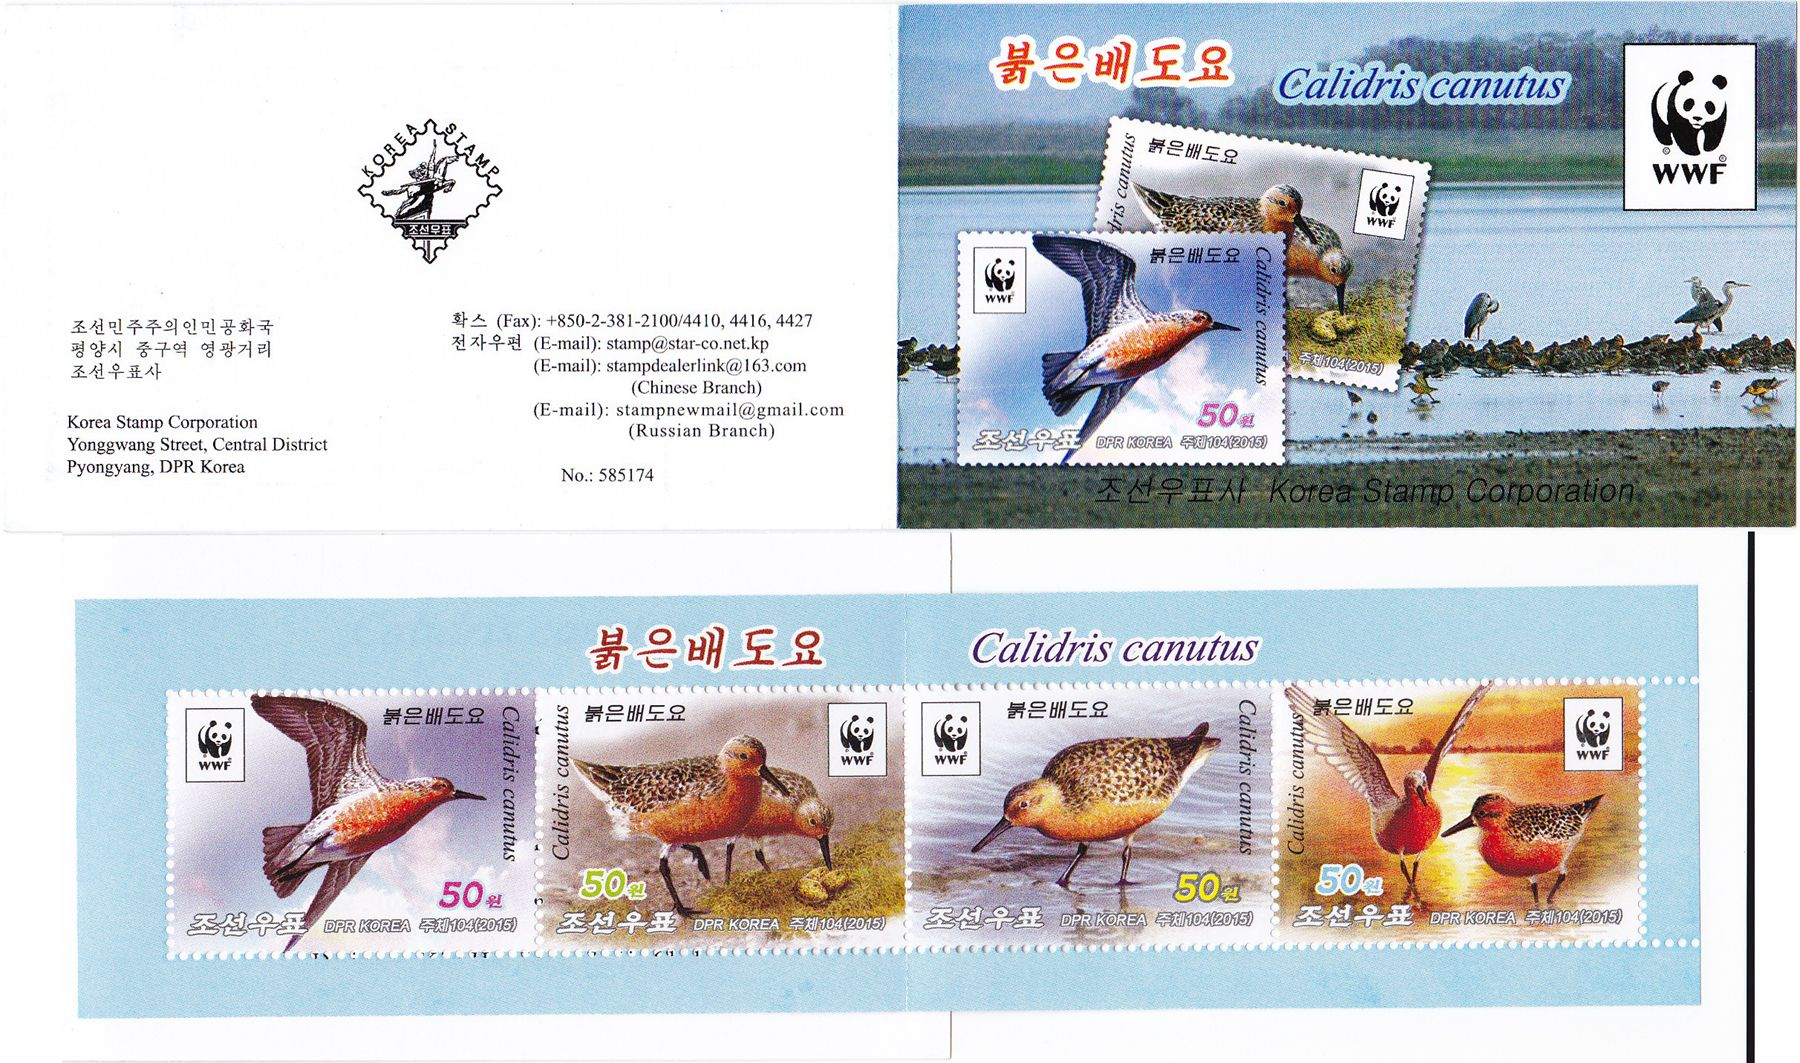 L9026, Korea WWF Bird (Calidris Canutus) Stamp Booklet, 2015